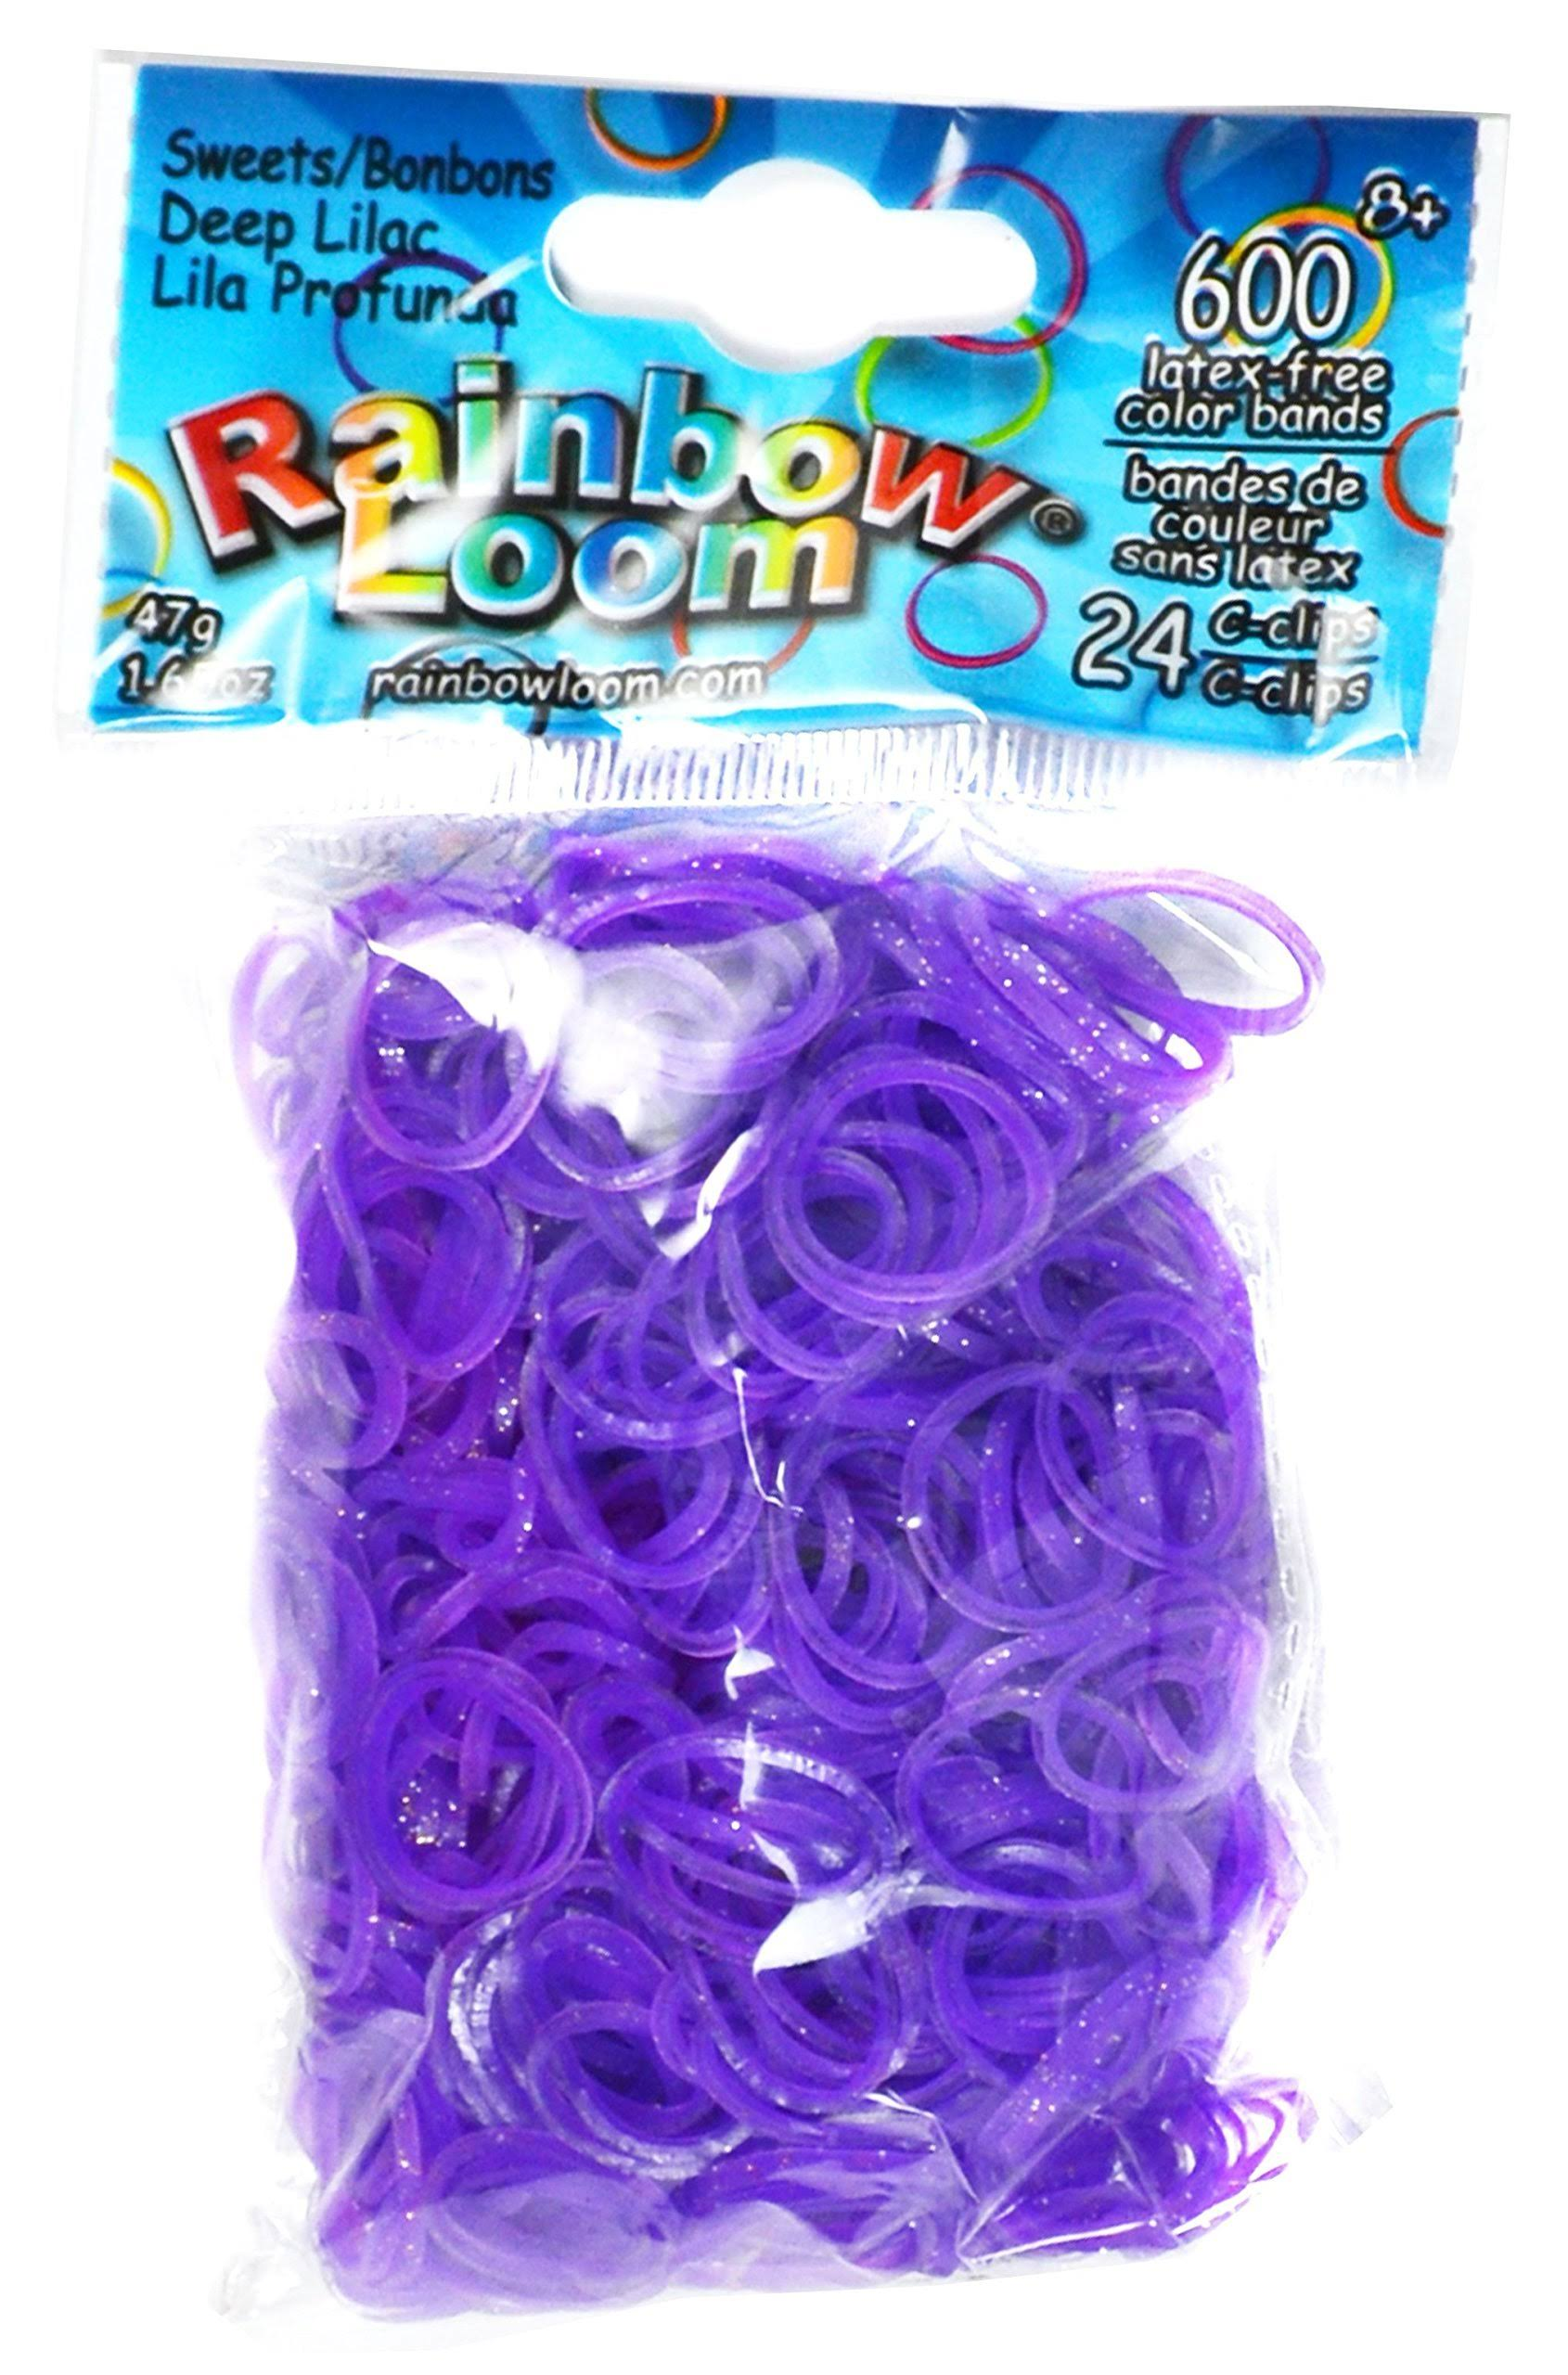 Rainbow Loom Sweets Rubber Bands Refill - Deep Lilac, 600ct